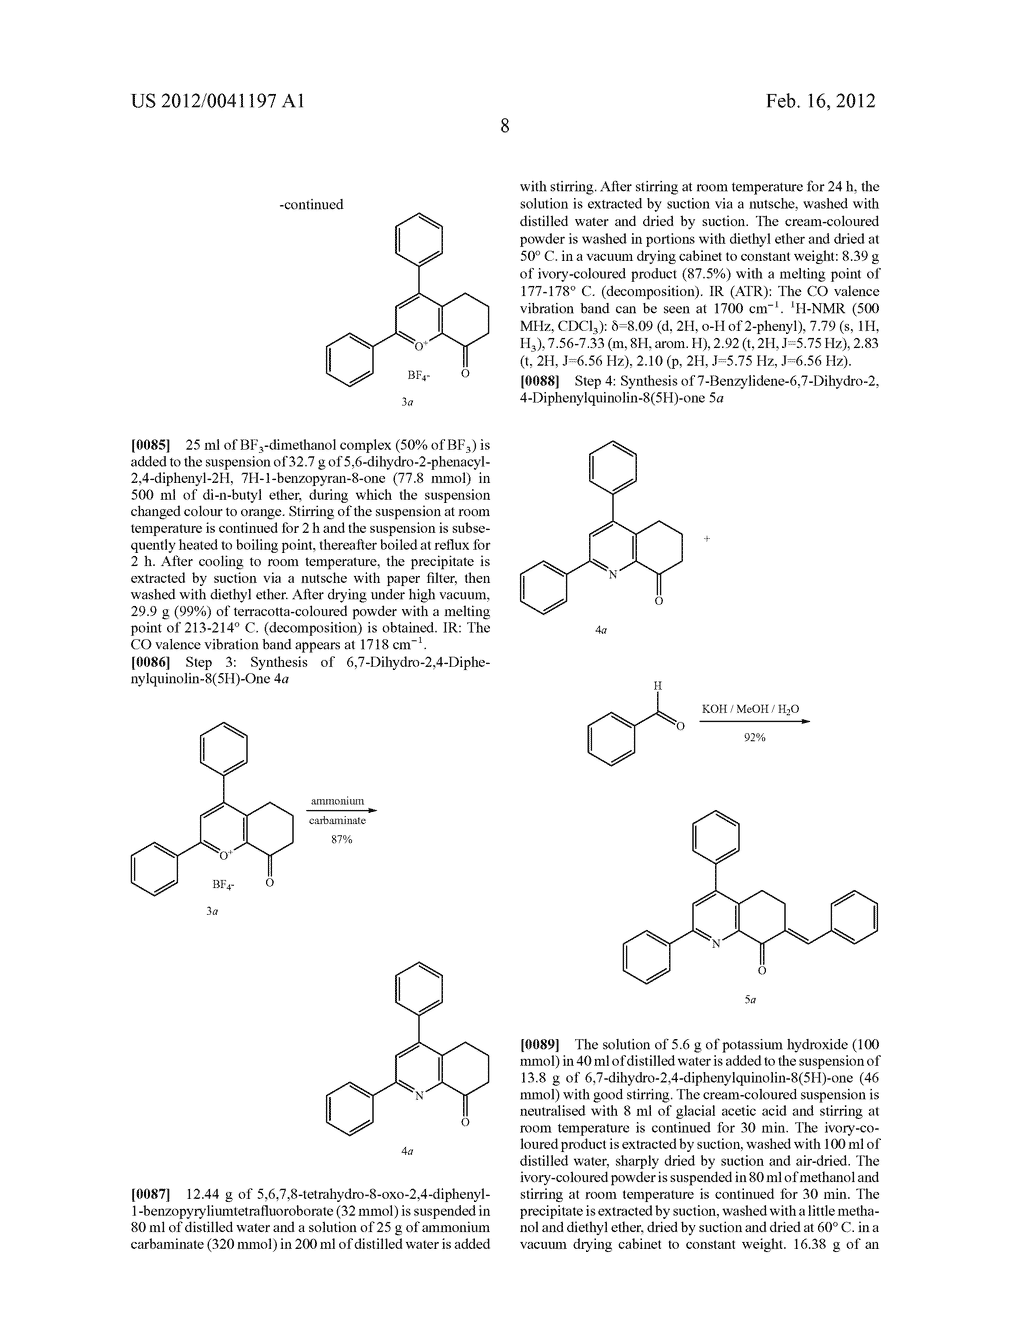 Pyrido[3,2-h]quinazolines and/or 5,6-dihydro Derivatives Thereof, a Method     for the Production Thereof and Doped Organic Semiconductor Material     Containing These - diagram, schematic, and image 09